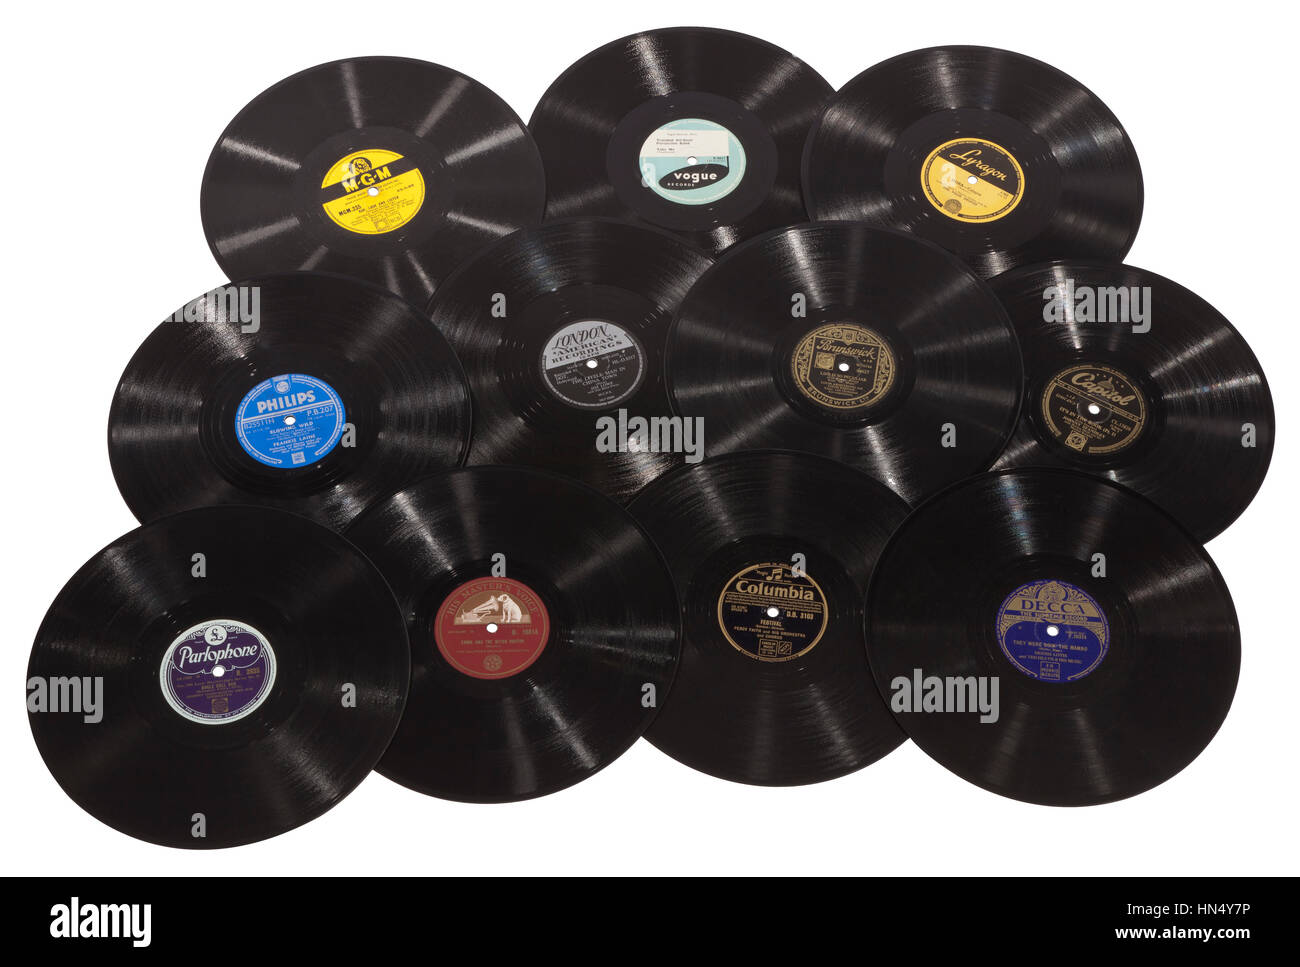 A Selection Of Old 78rpm Vinyl Records